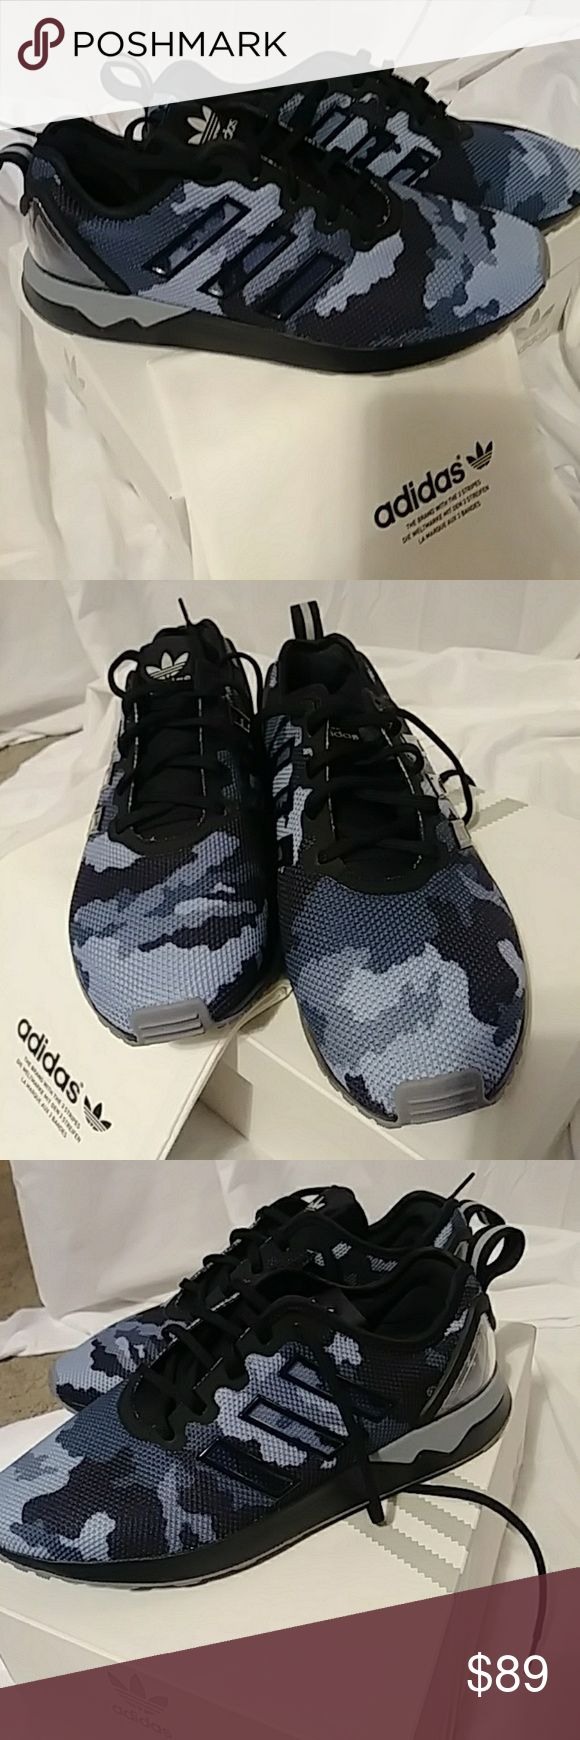 Adidas brand new womens sneakers size 8 Never worn custom made design Adidas sneakers. Blue gray black camo design. Super soft mesh like material . size 8 but run slightly bigger. More like 8.5. Wider front . adidas Shoes Sneakers